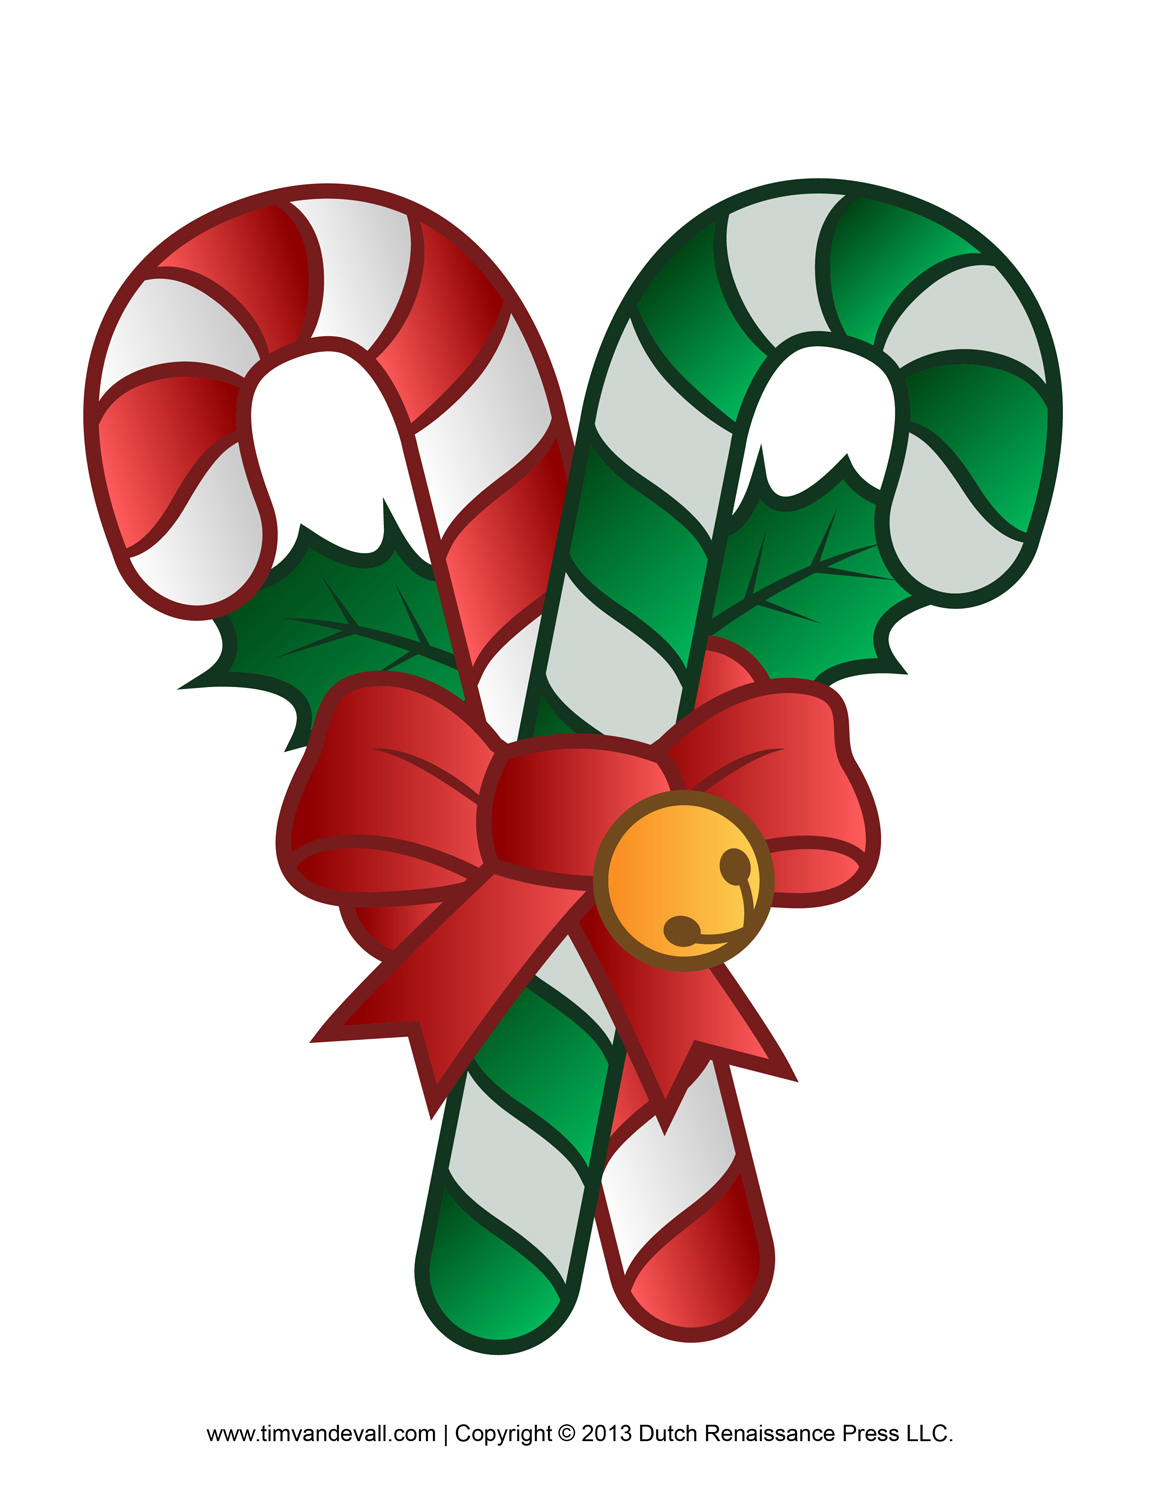 resolution 1159x1500 - Christmas Candy Canes